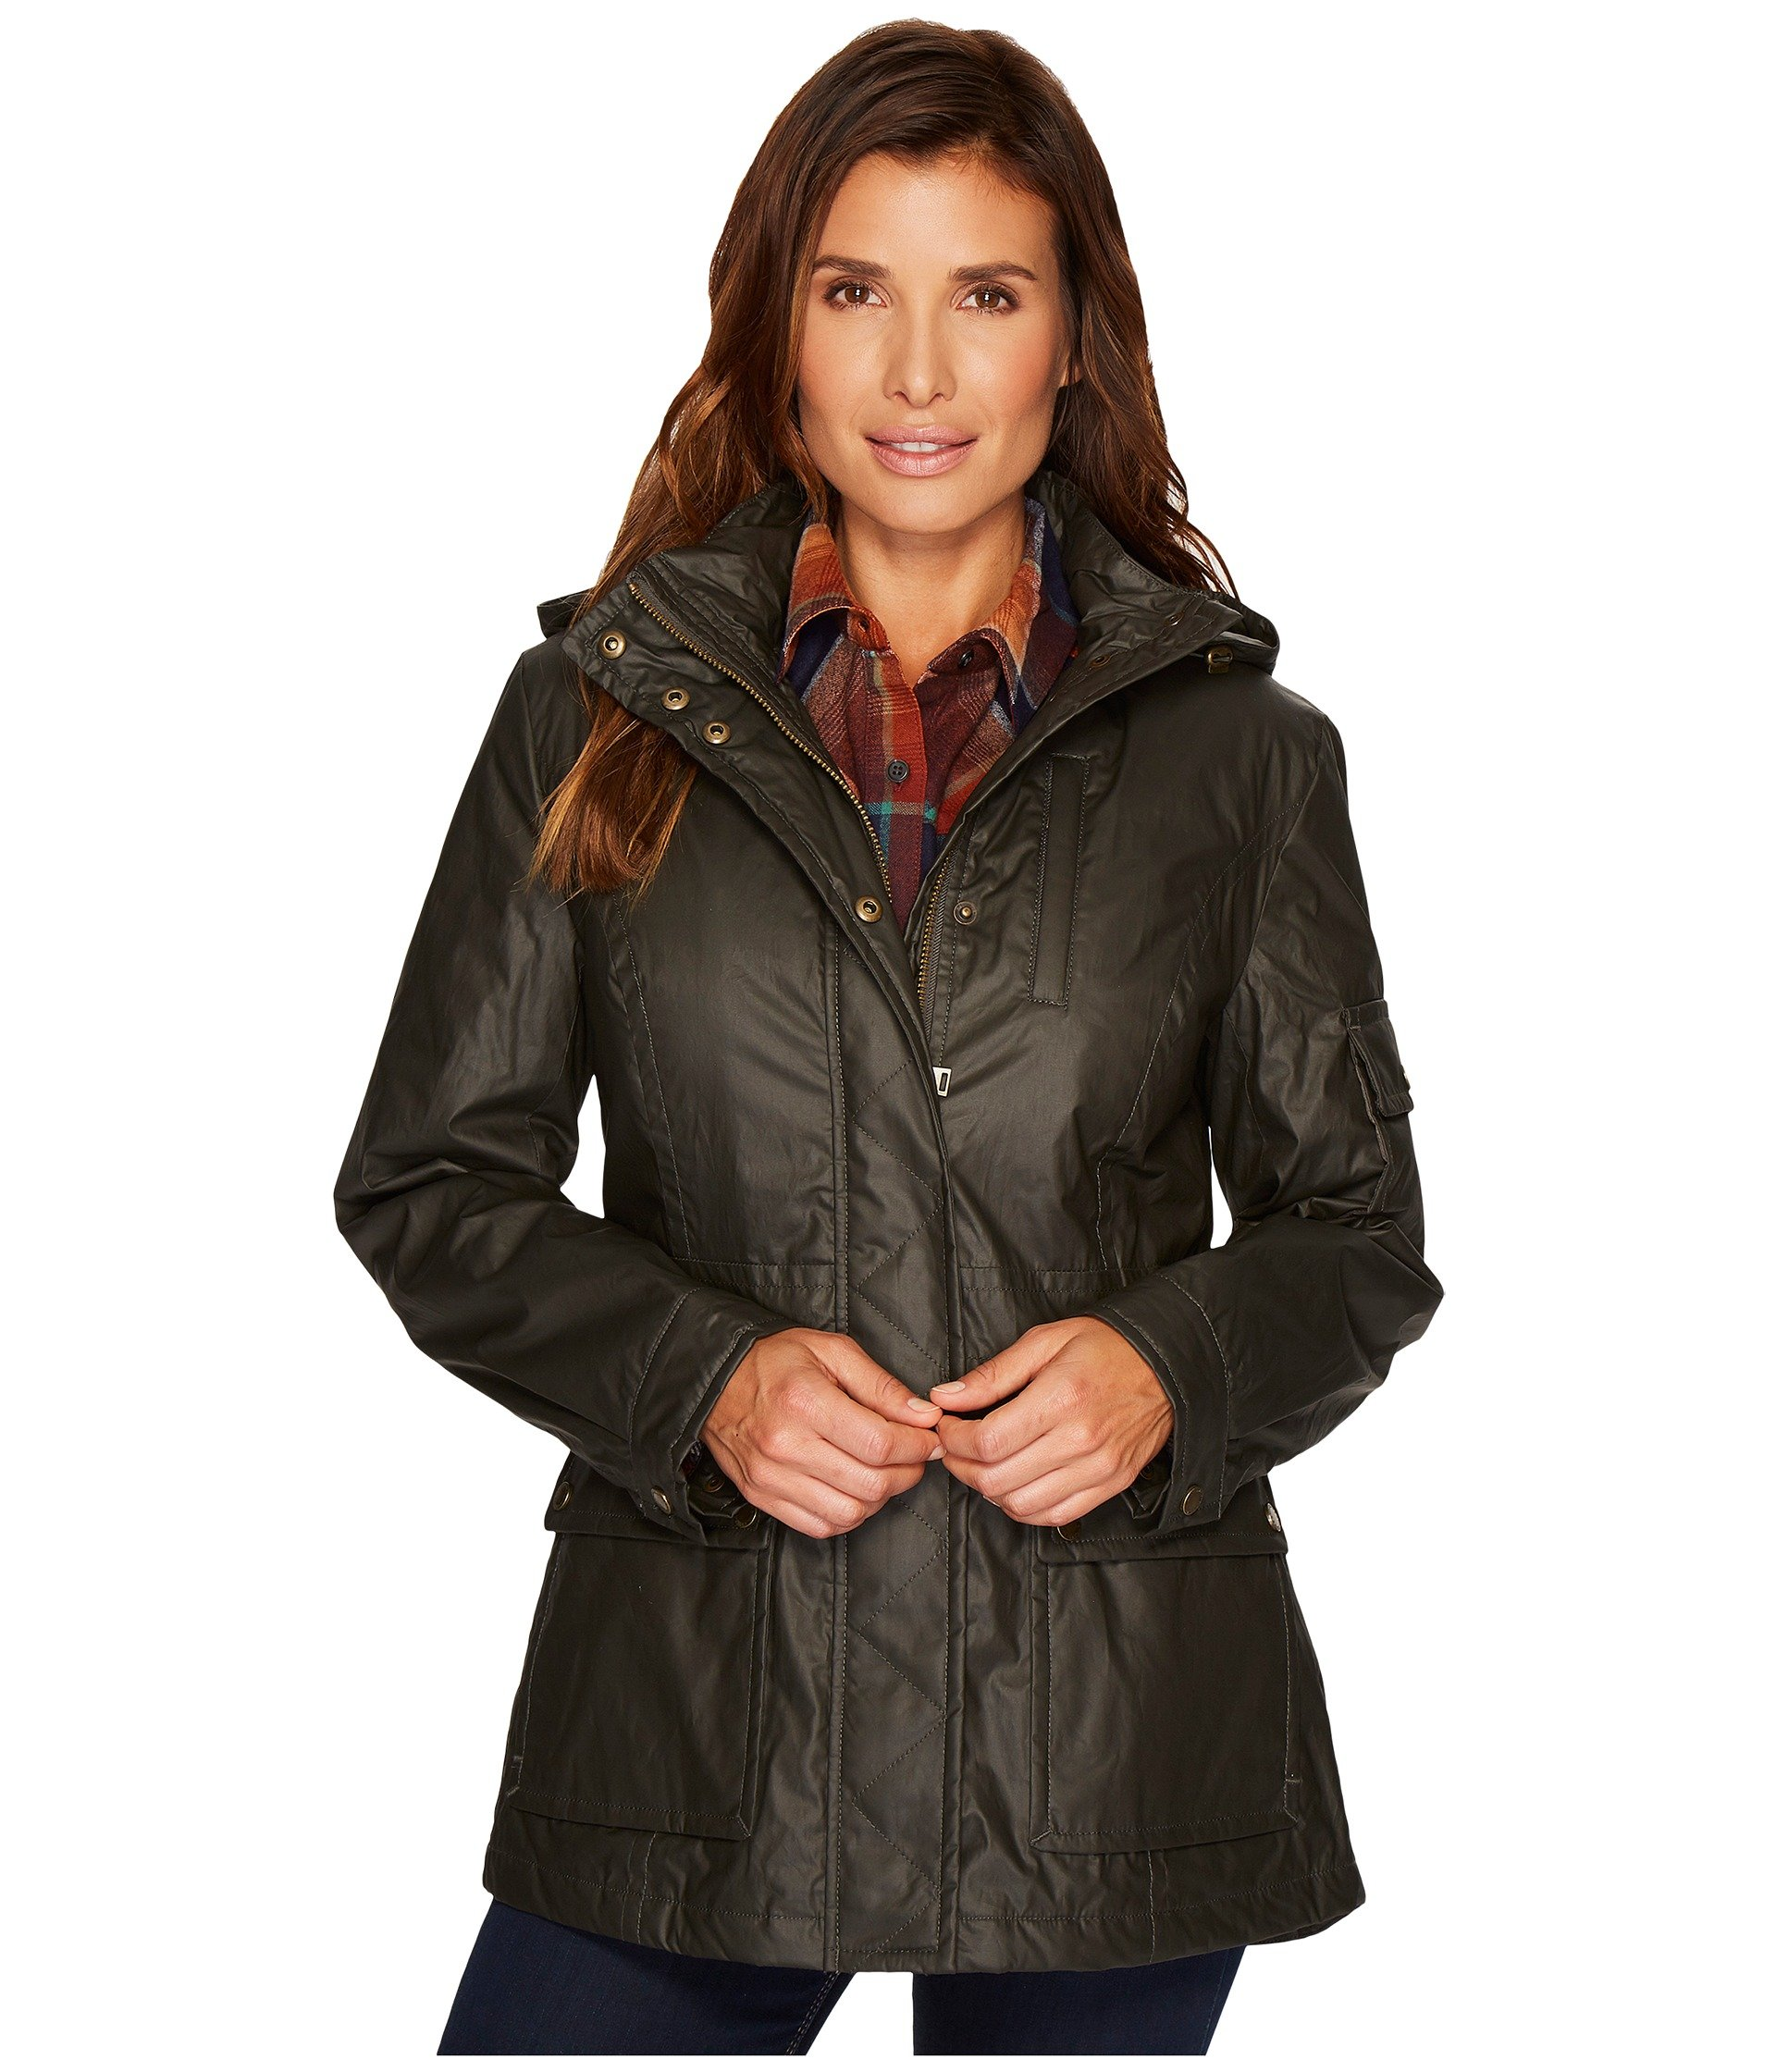 Pendleton Women's Waxed Cotton Hooded Zip Front Jacket, Olive, M by Pendleton (Image #7)